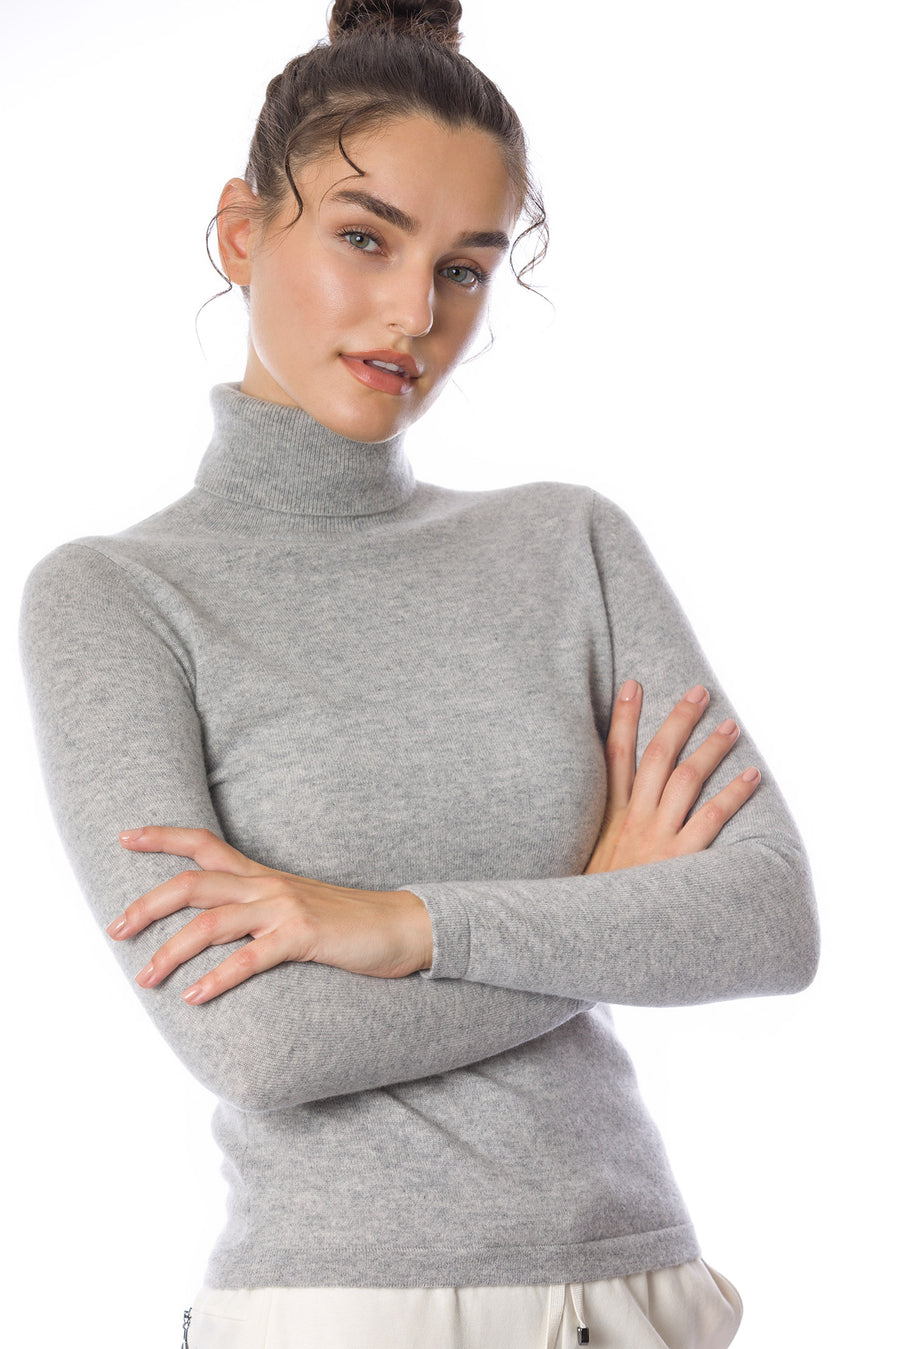 Sustainable Cashmere Turtleneck Sweater - Ice Grey - Dongli Cashmere